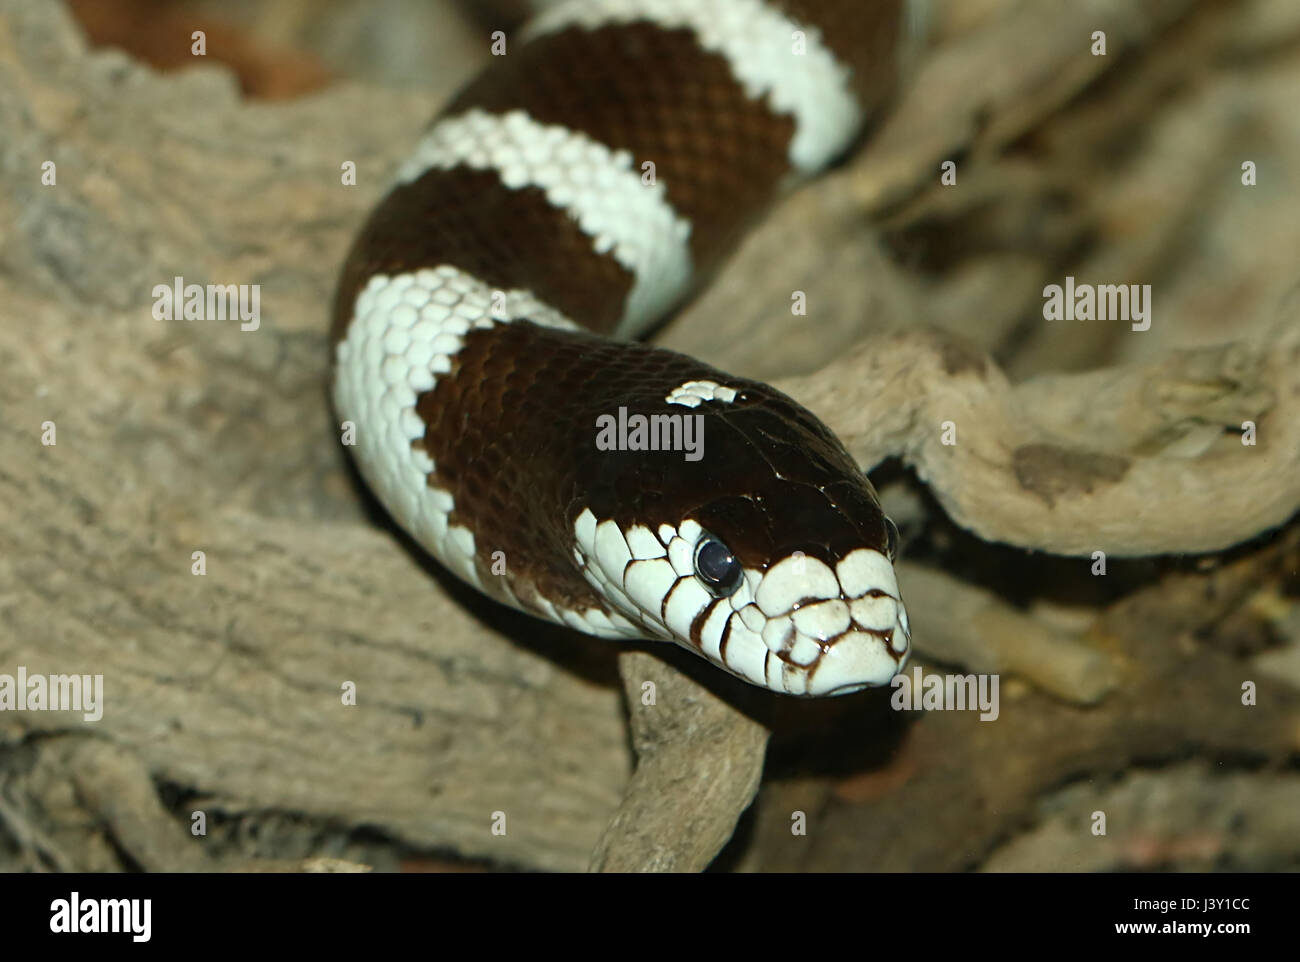 Black and white California Kingsnake ( Lampropeltis Californiae, Lampropeltis getula californiae) in closeup - Stock Image